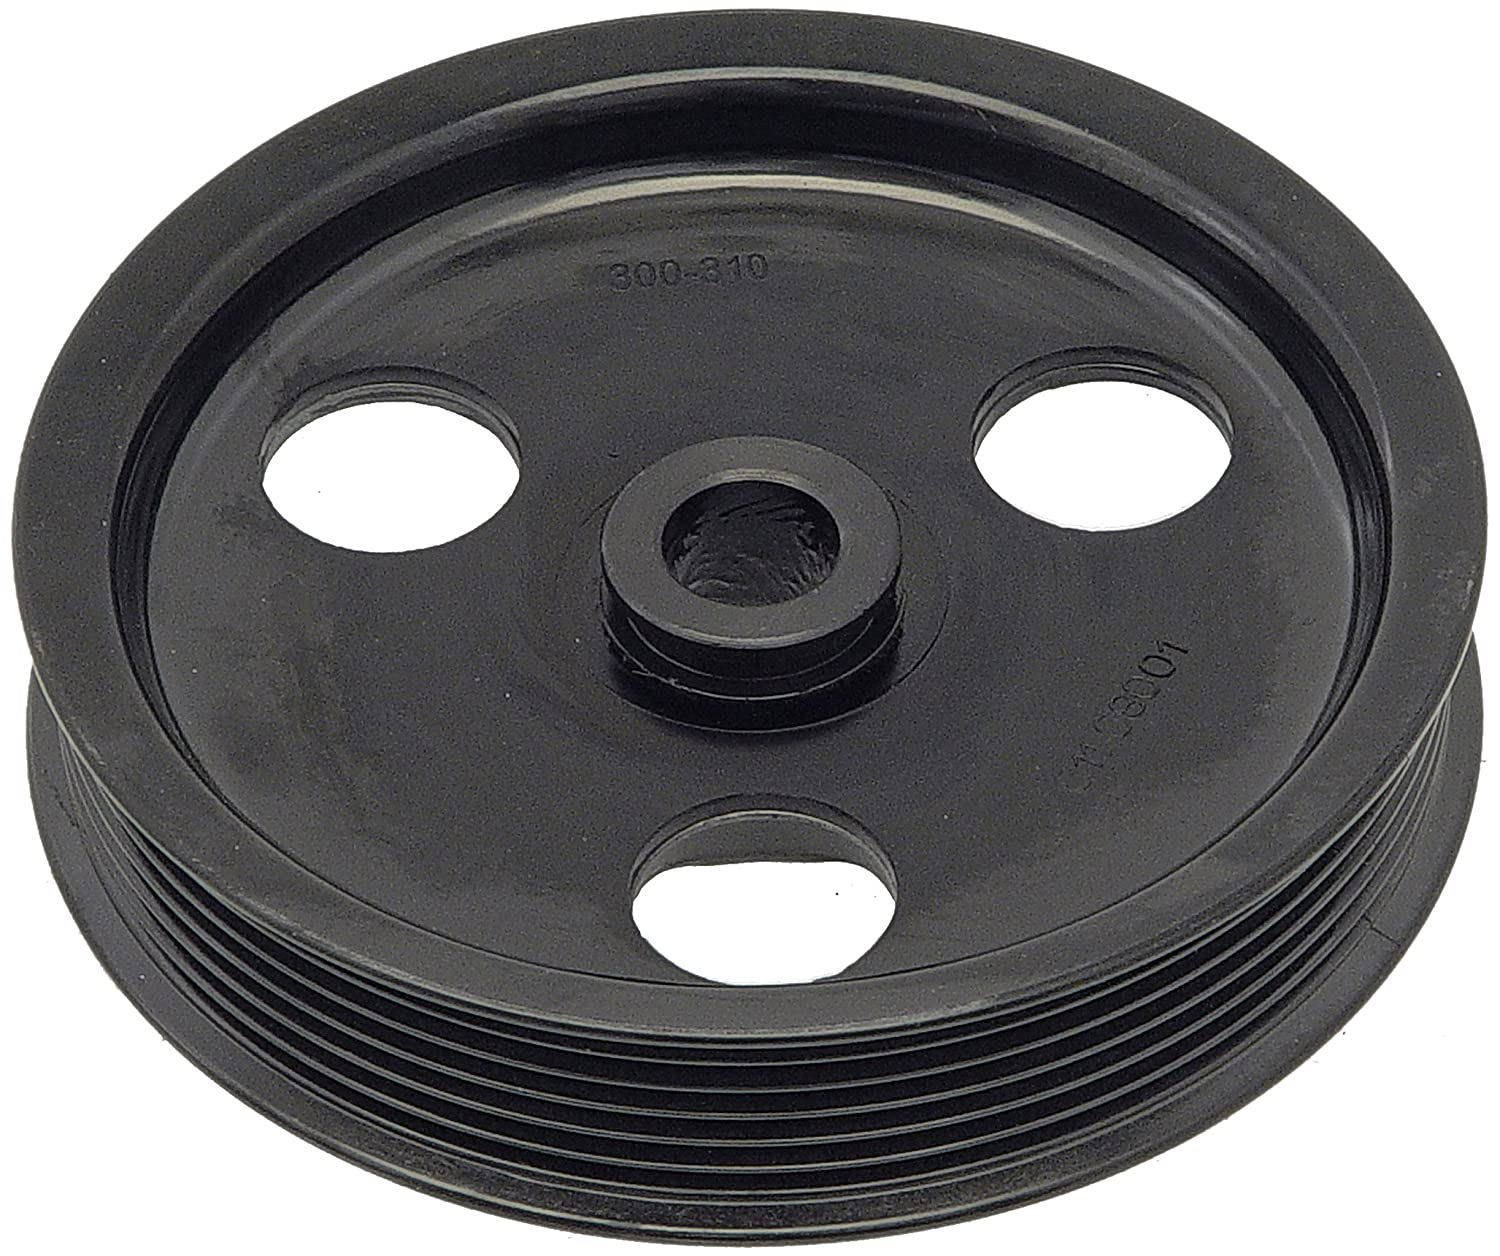 Dodge Dynasty 1990 Idler Tensioner Pulley: Dorman 300-310 Power Steering Pulley Vehicles Parts